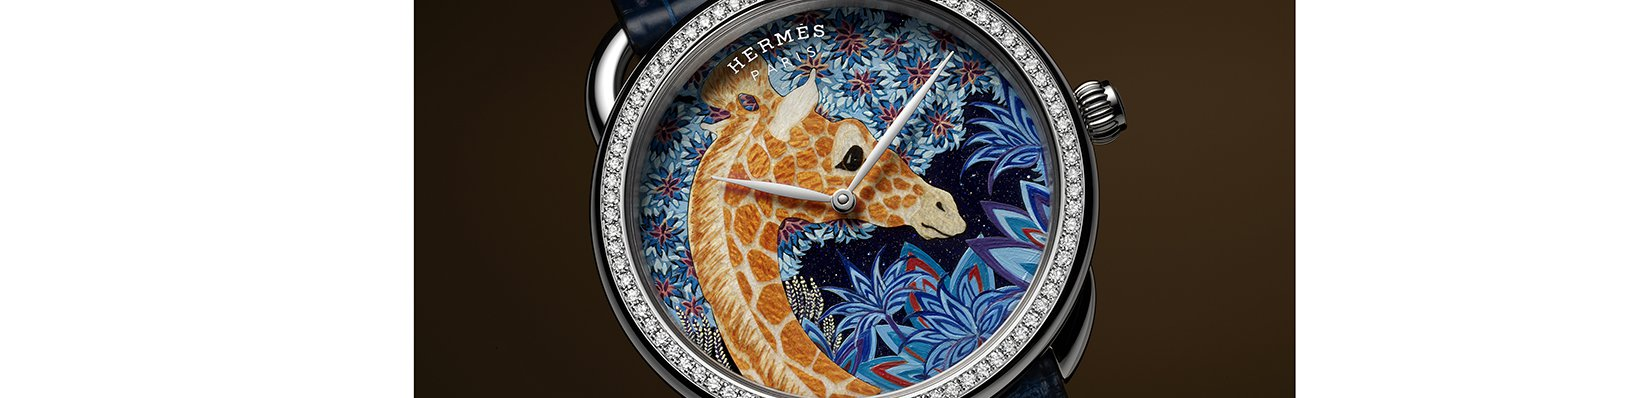 South African inspired watch set to sell for R1,16million